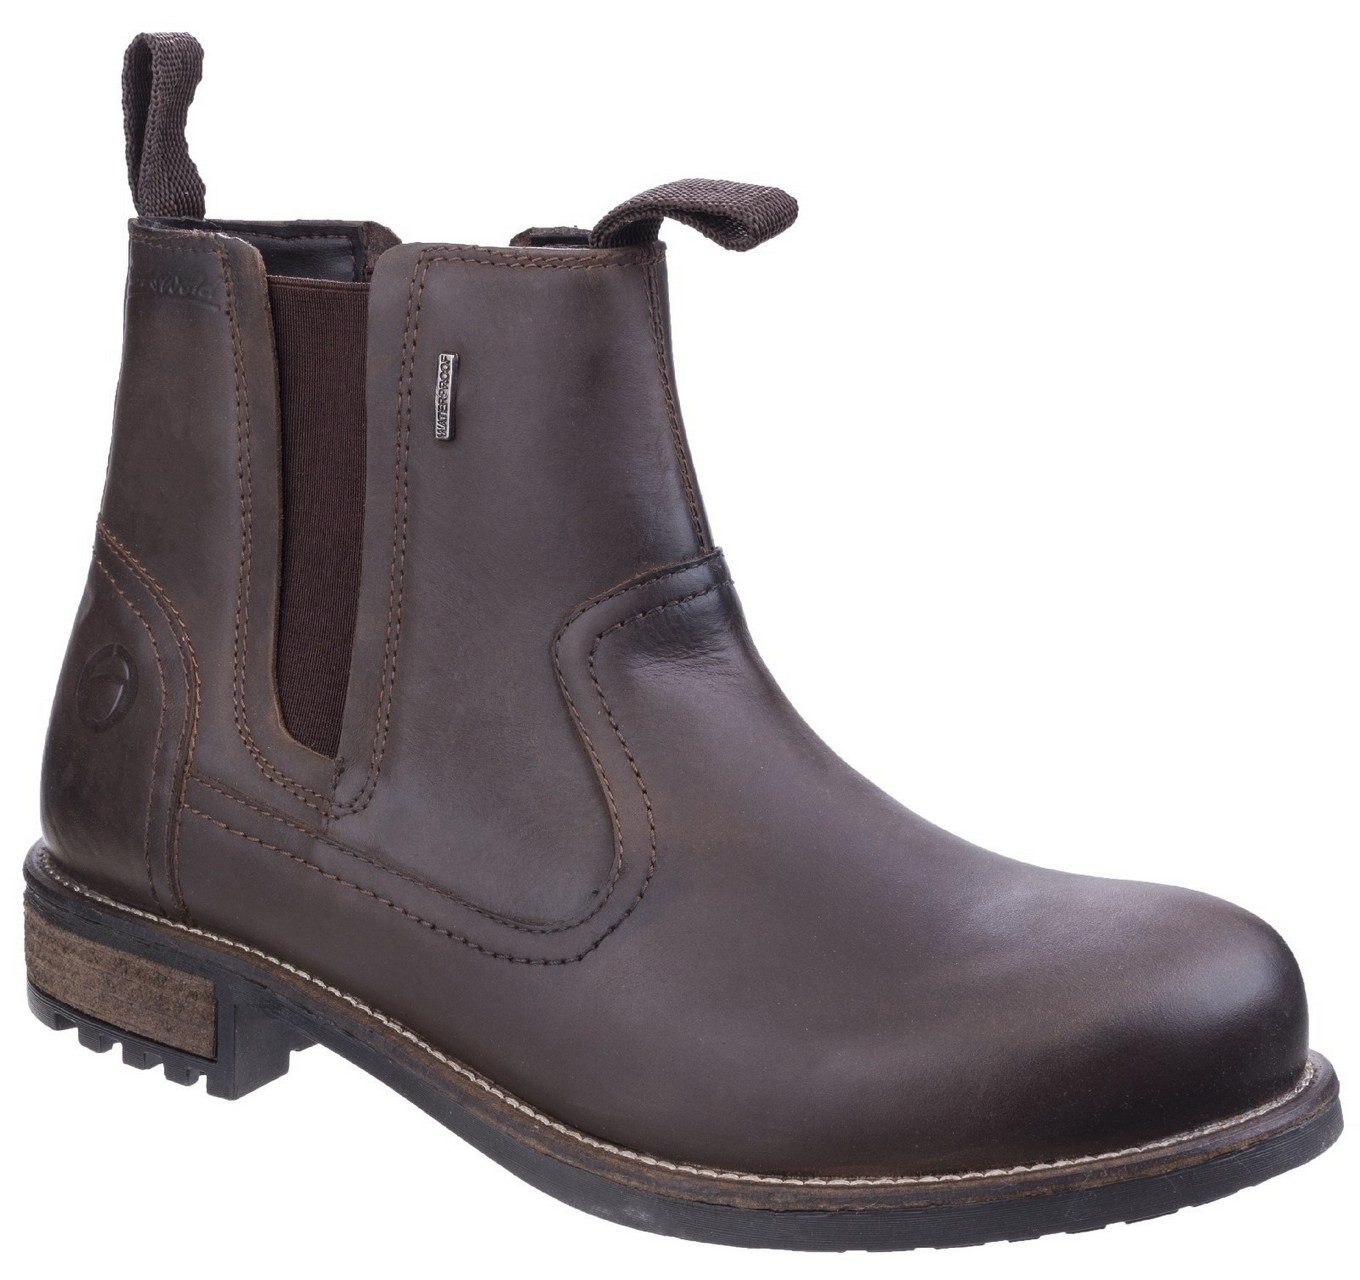 Worcester Boots Brown 11